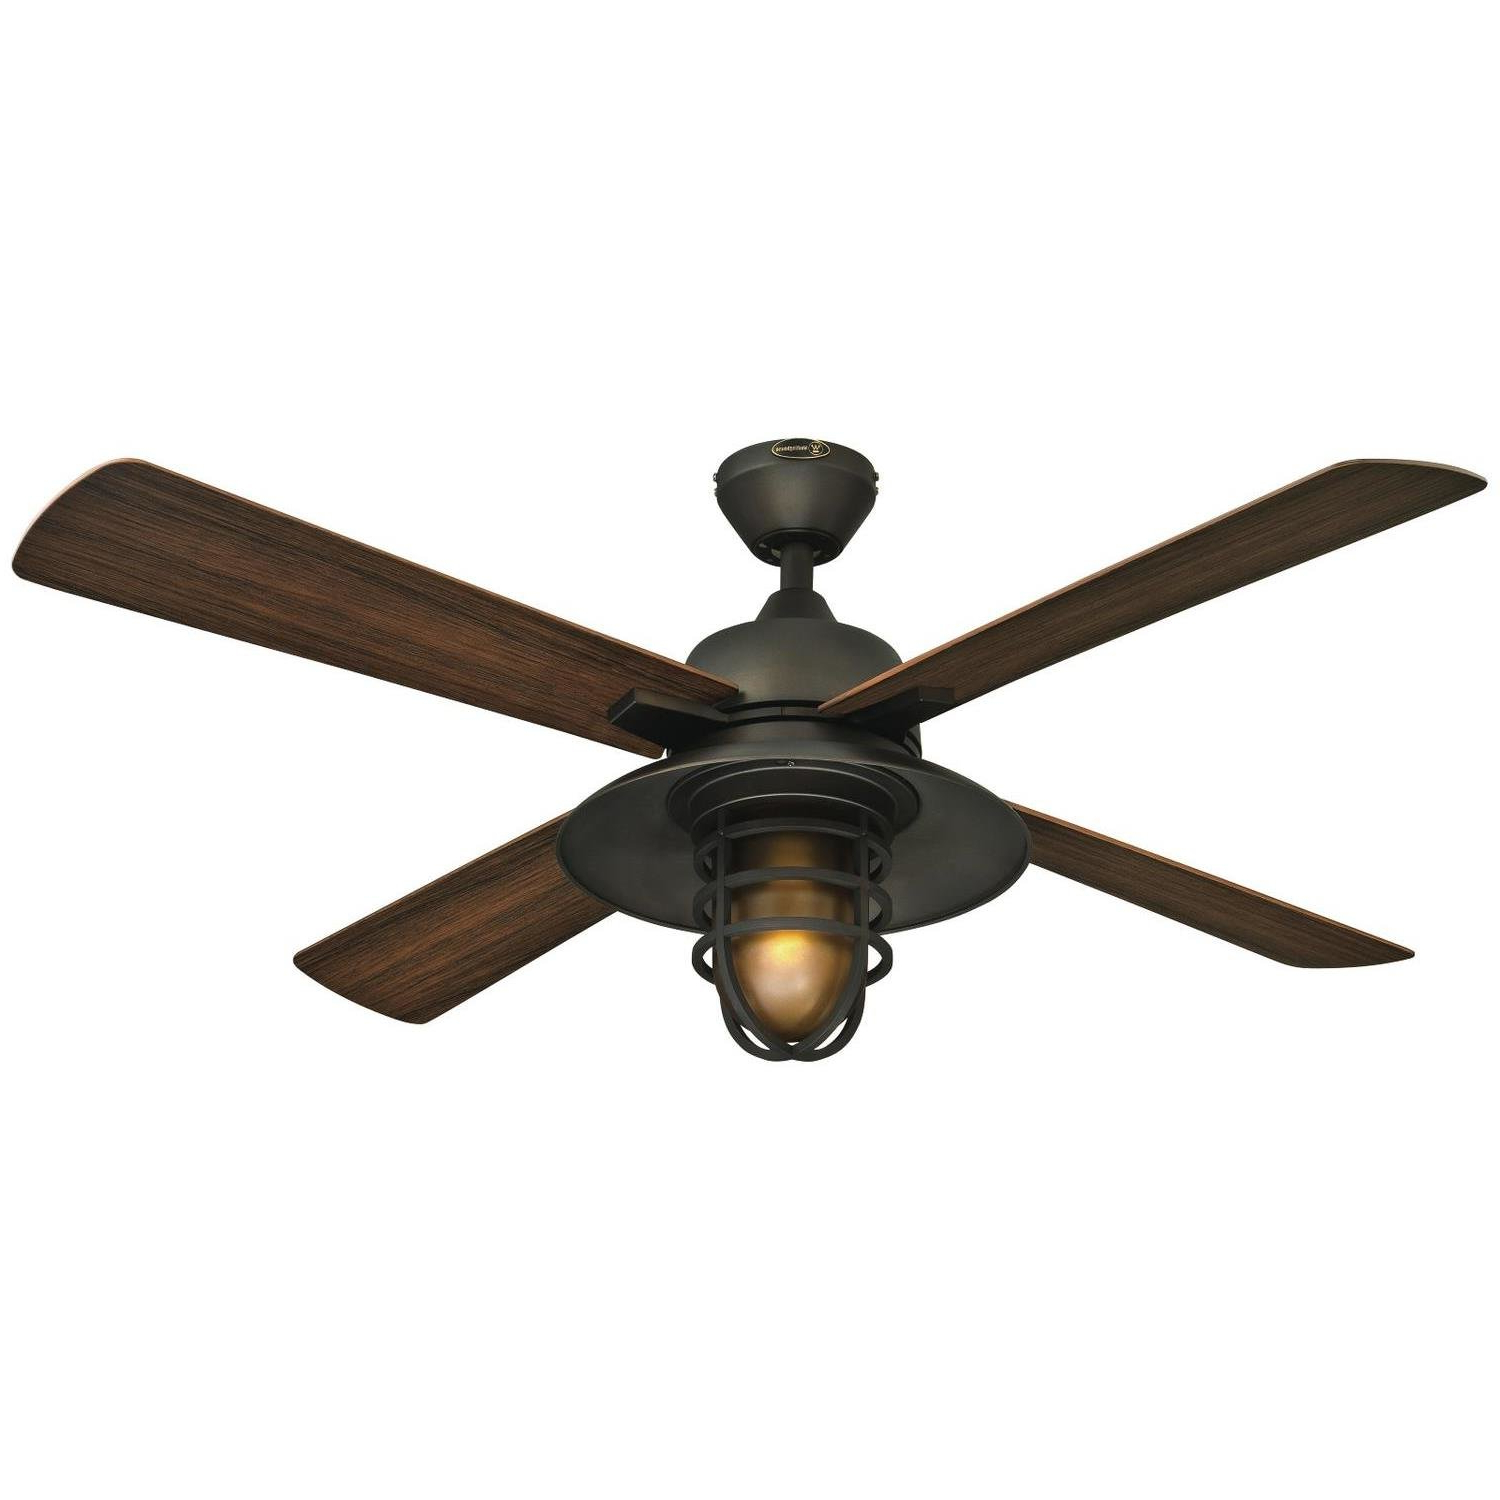 "52"" Barcus 4 Blade Ceiling Fan, Light Kit Included & Reviews Regarding 2020 Rainman 5 Blade Outdoor Ceiling Fans (View 6 of 20)"